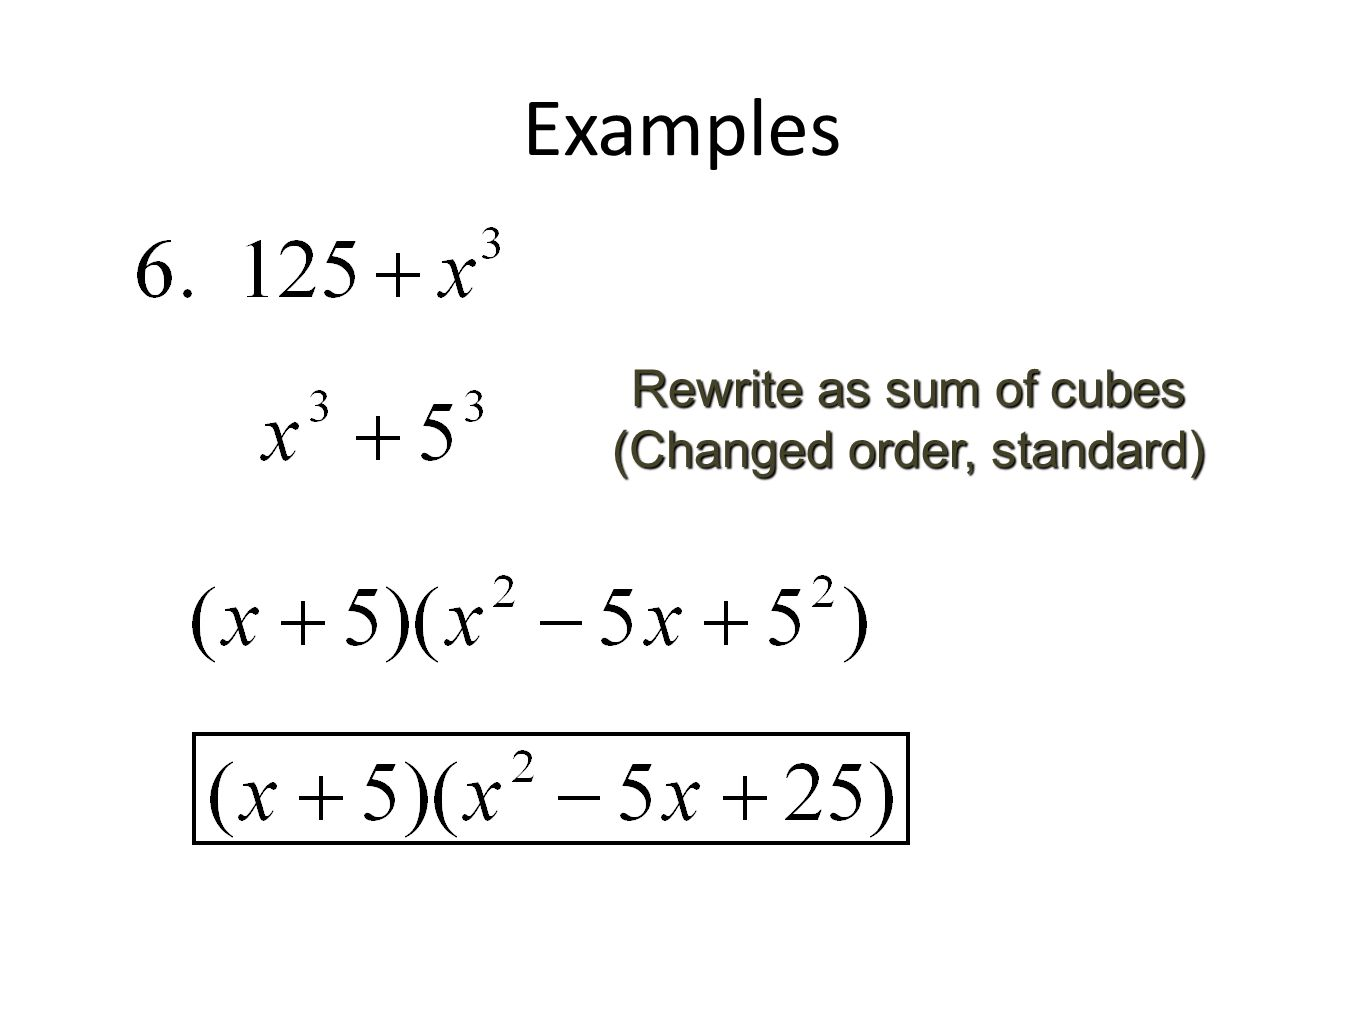 Rewrite As Sum Of Cubes (changed Order, Standard)